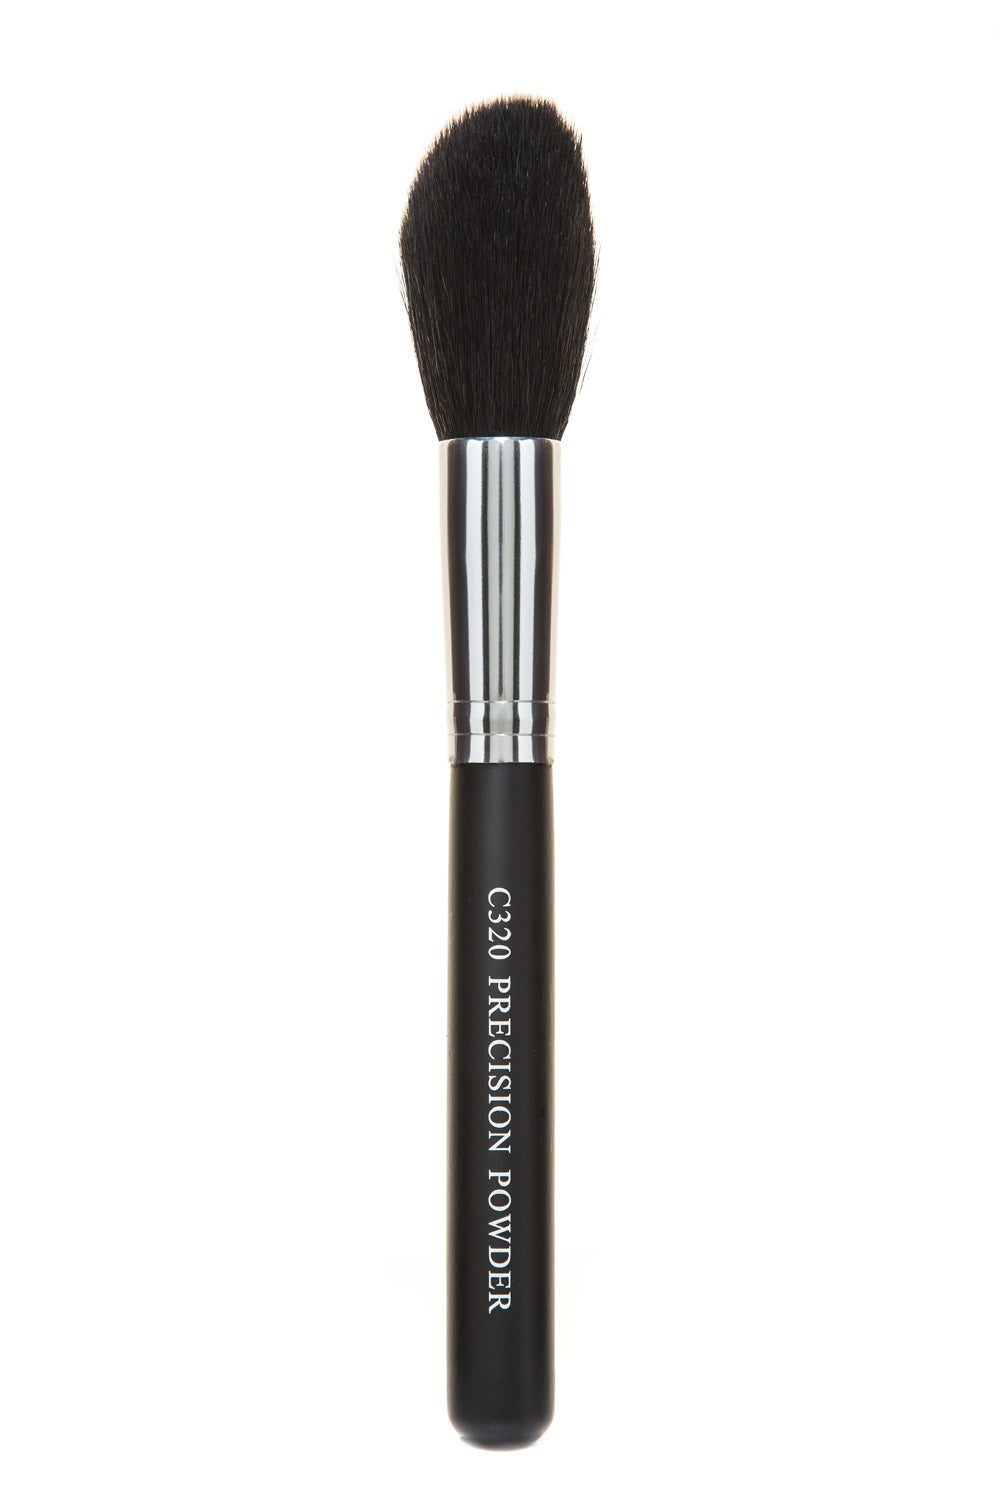 Pro Precision Pointed Powder Brush